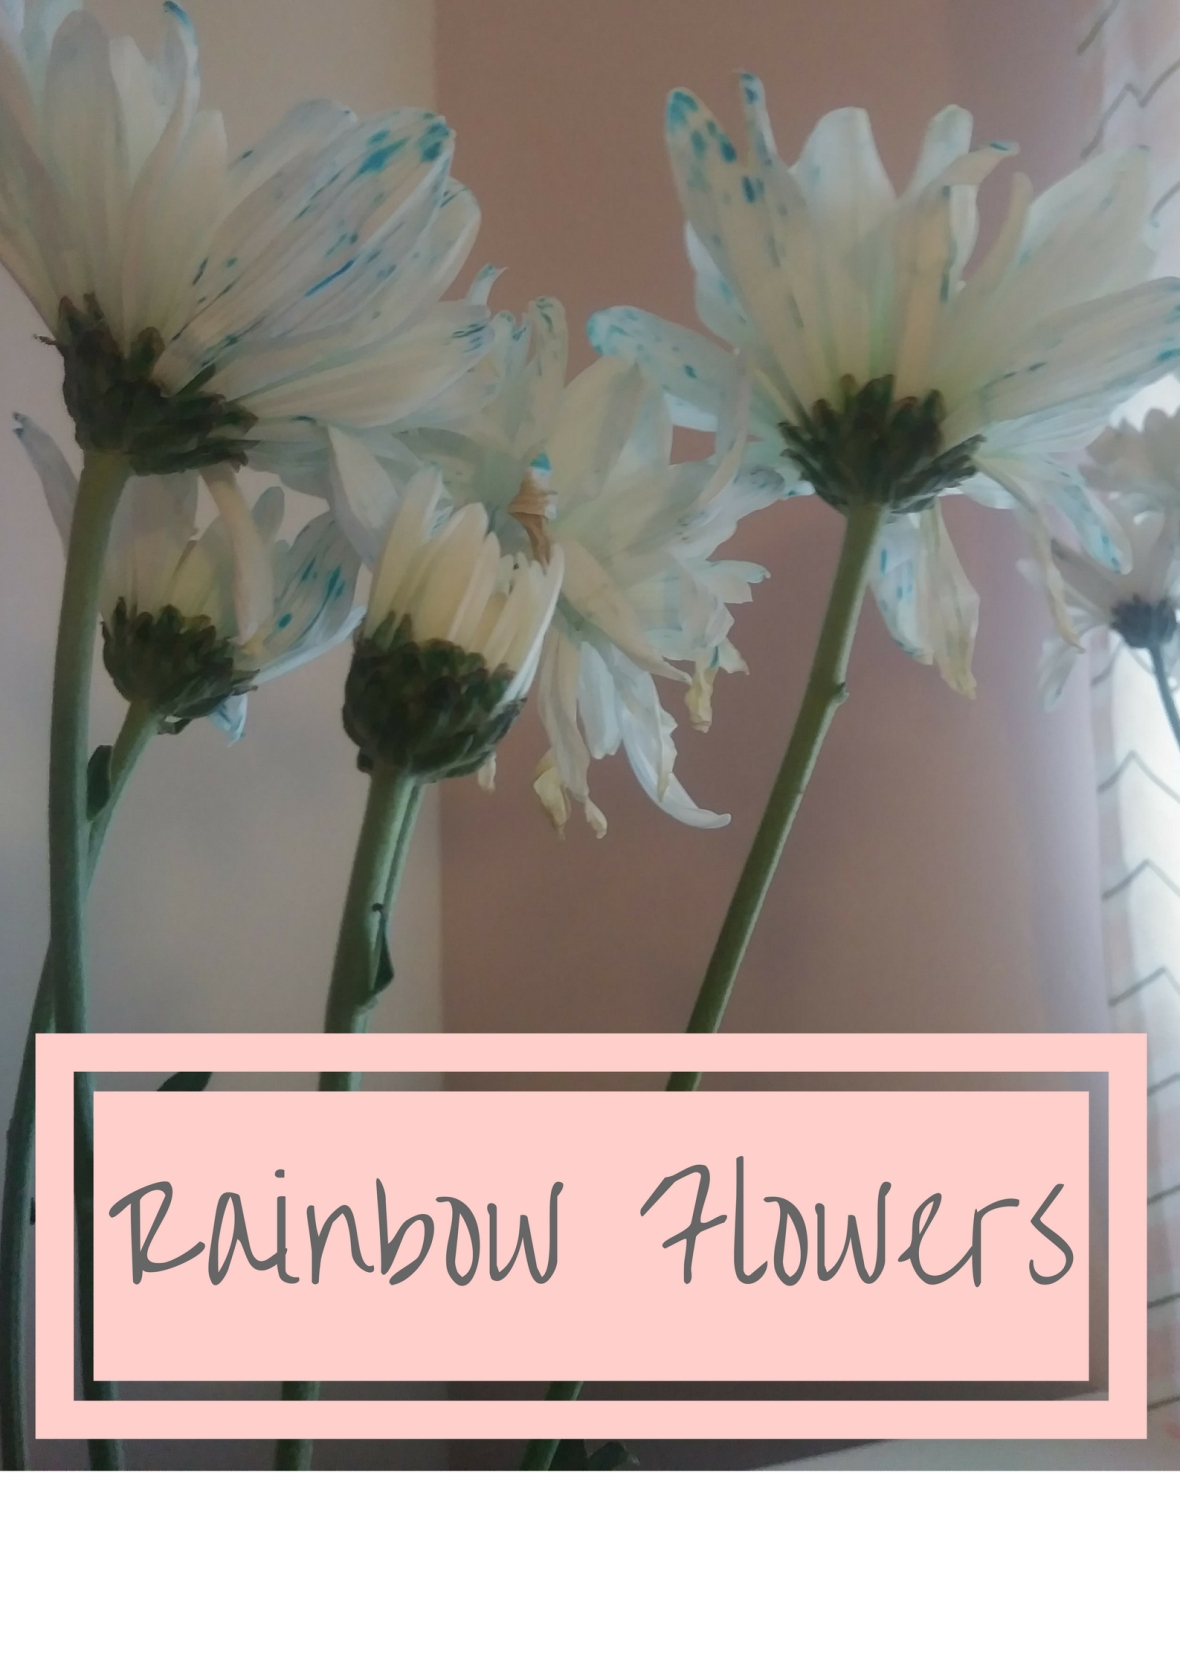 RainbowFlowers